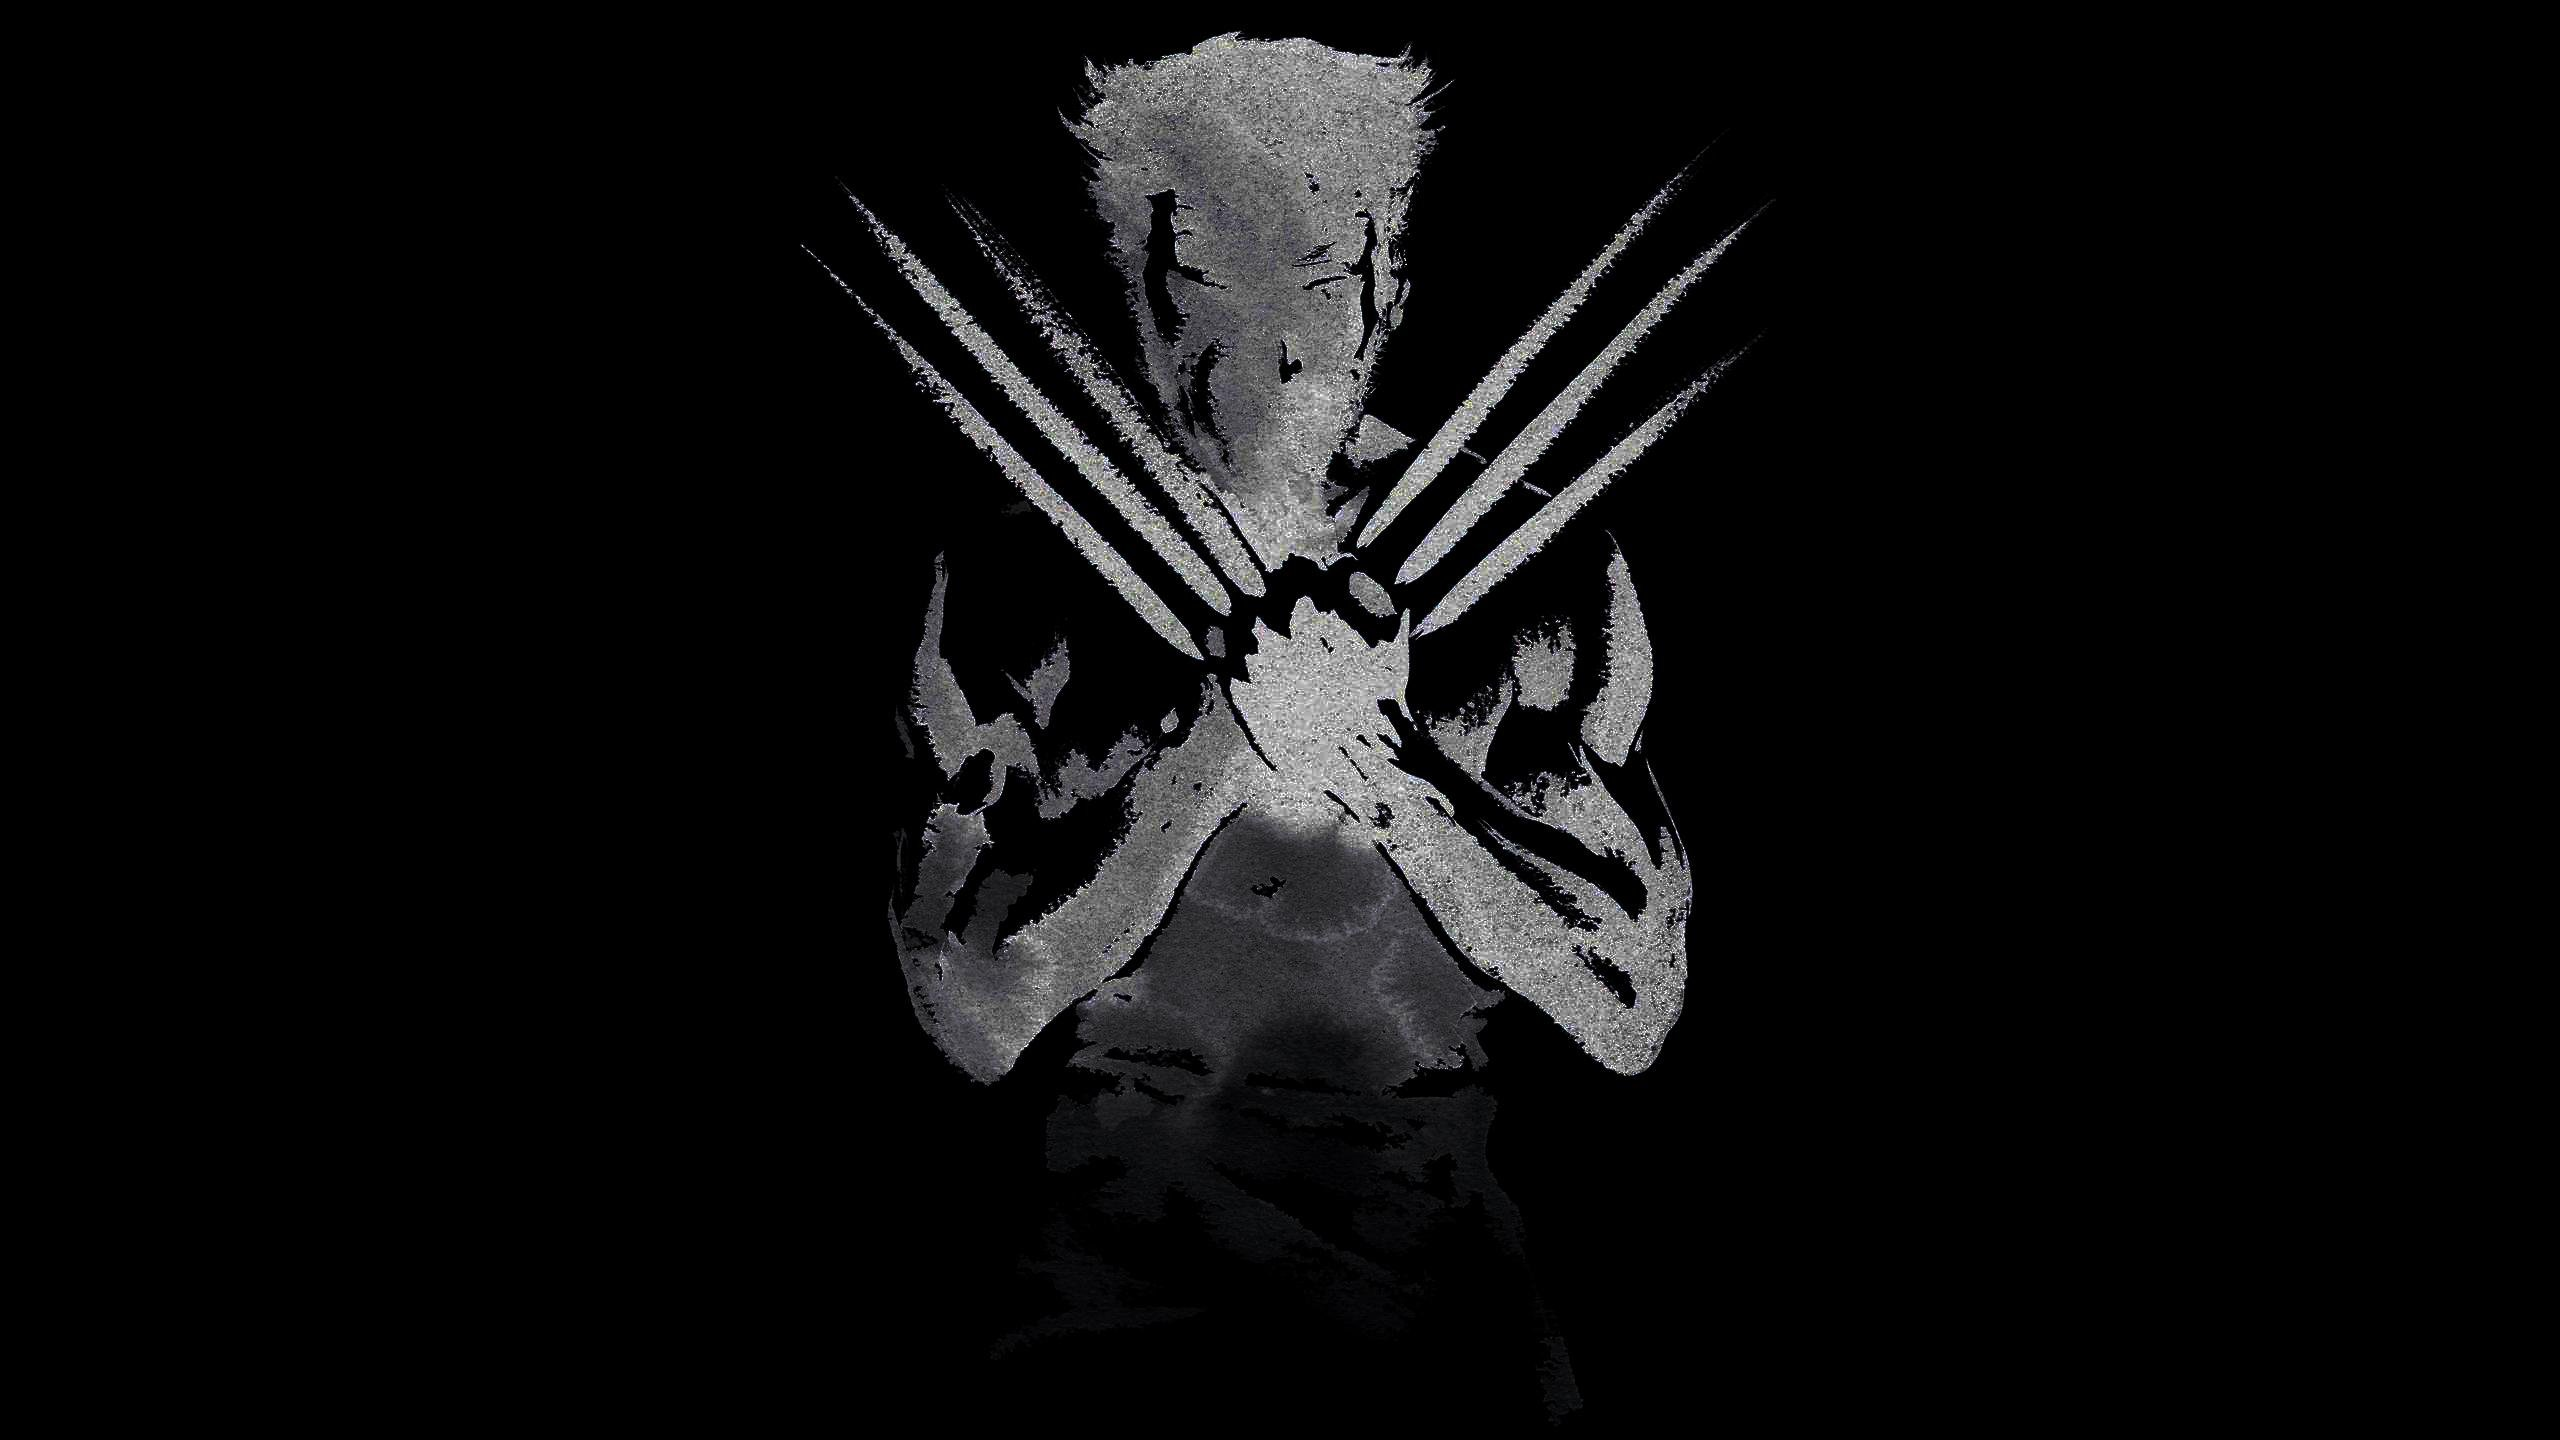 Wolverine Wallpapers 4k For Your Phone And Desktop Screen